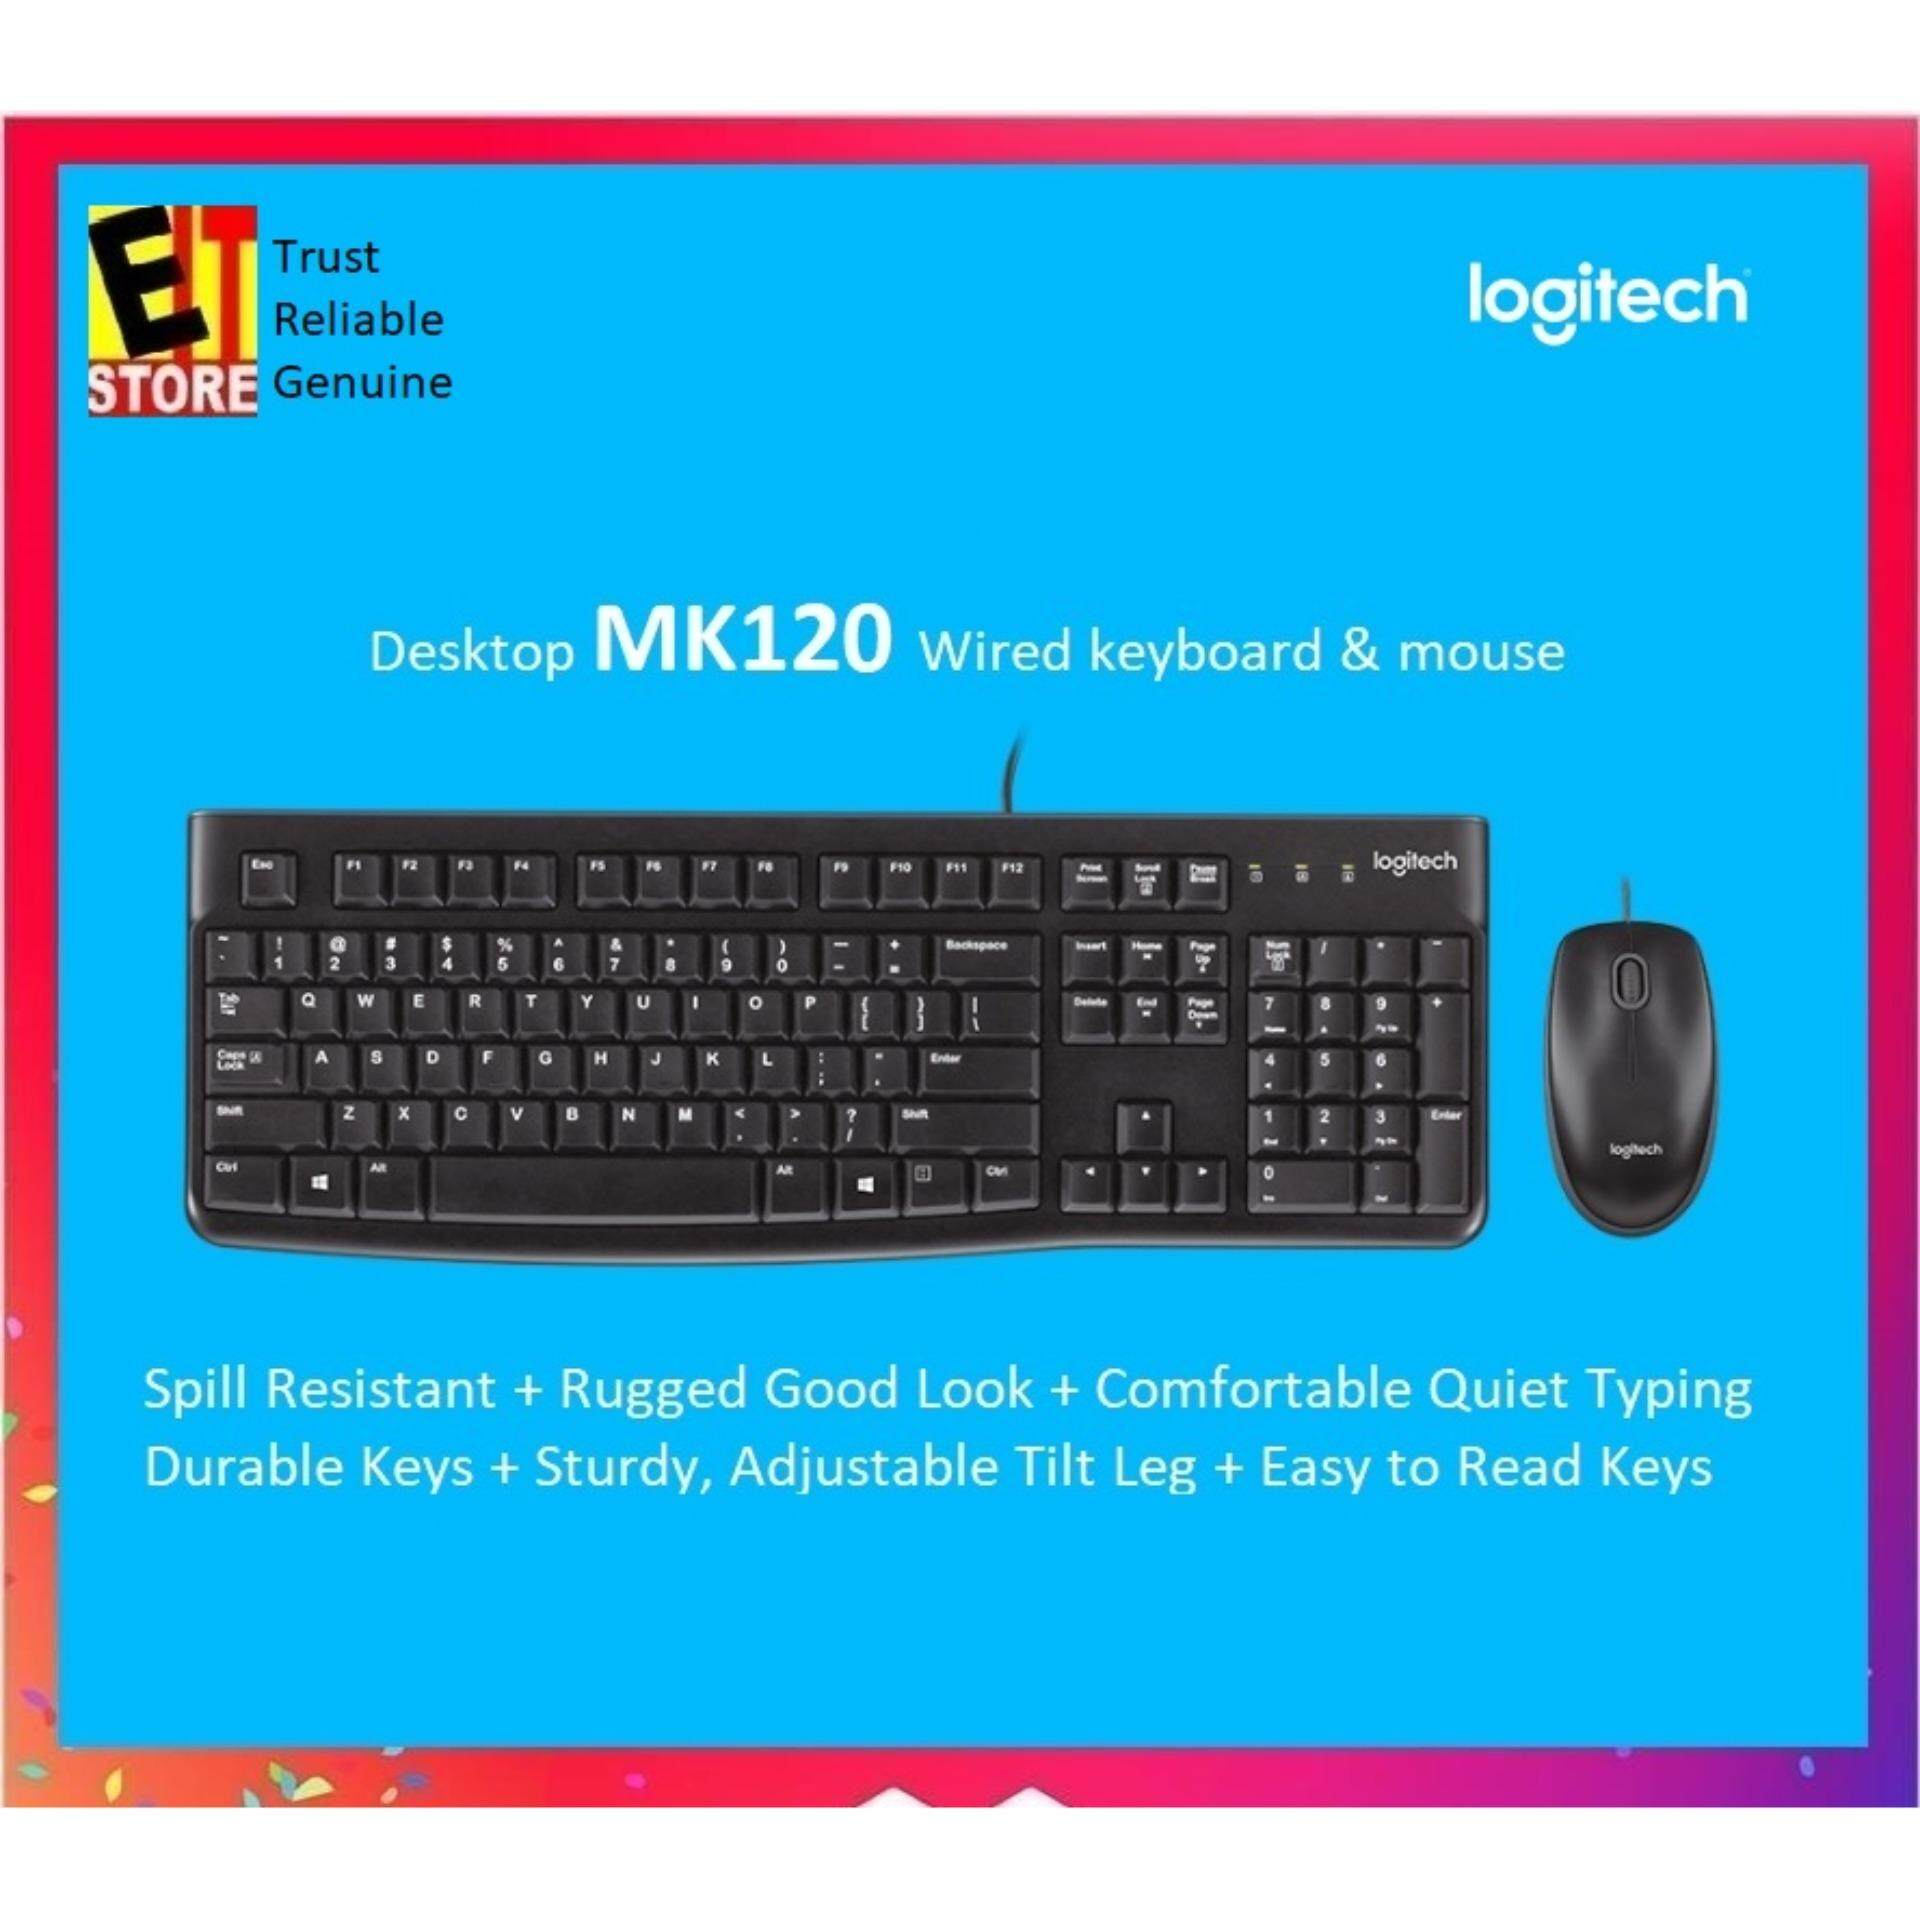 Logitech Computer Accessories Keyboards Price In Malaysia Best Wireless Touch Keyboard K400 Plus White Key 1 Mk120 Desktop Usb Mouse